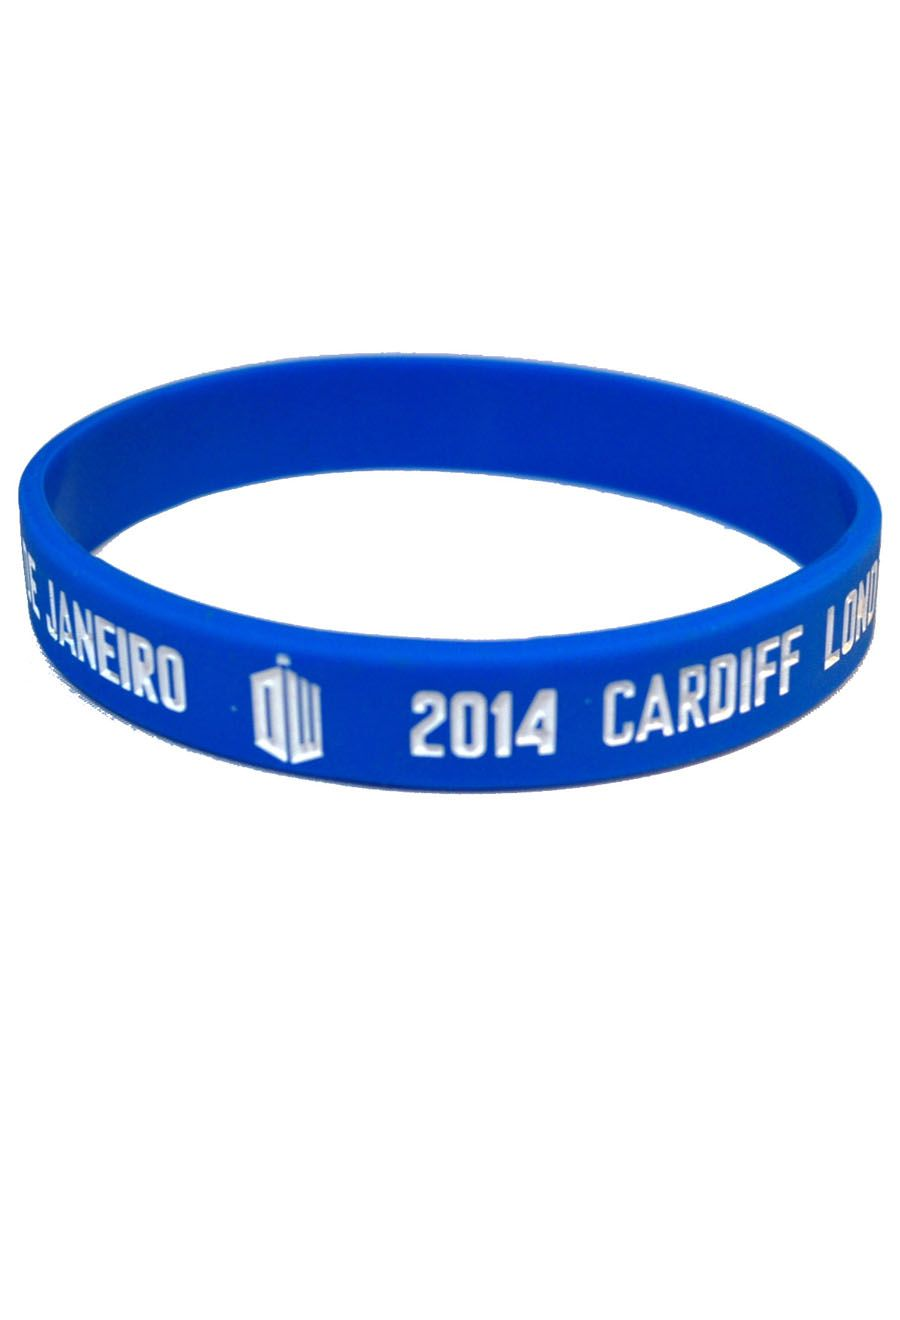 Doctor Who: World Tour Wristband